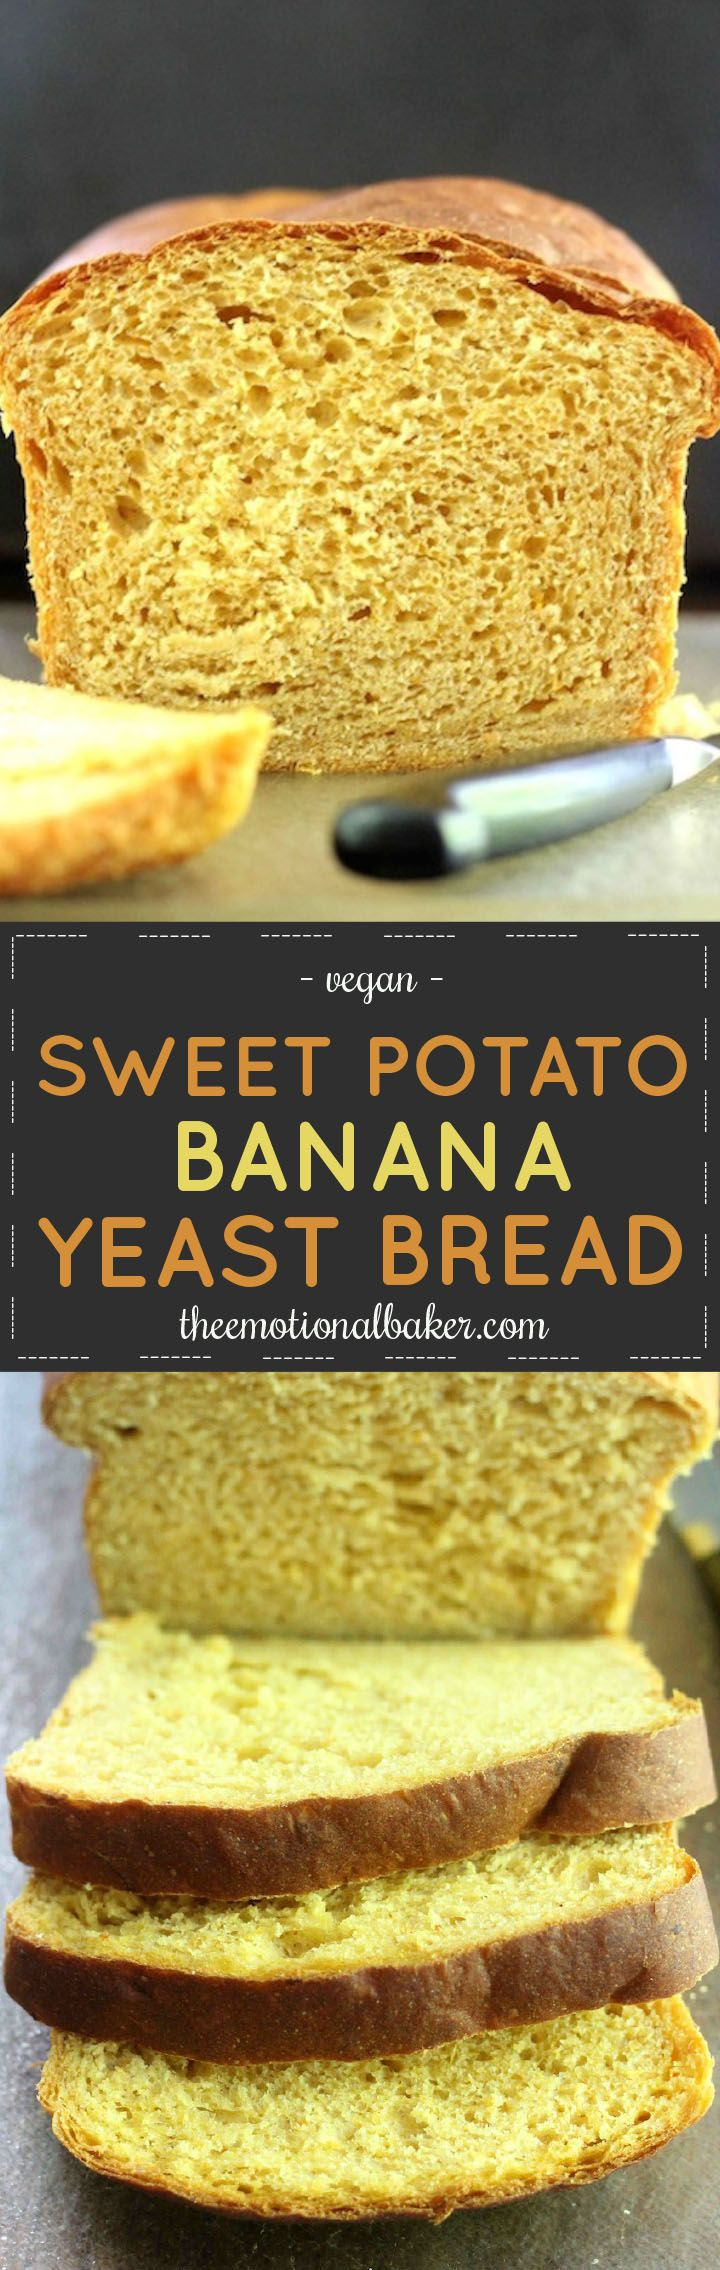 Everyone can make homemade bread! This recipe for Sweet Potato Banana Bread is easy and yields a moist, beautiful loaf perfect for fall and Thanksgiving.